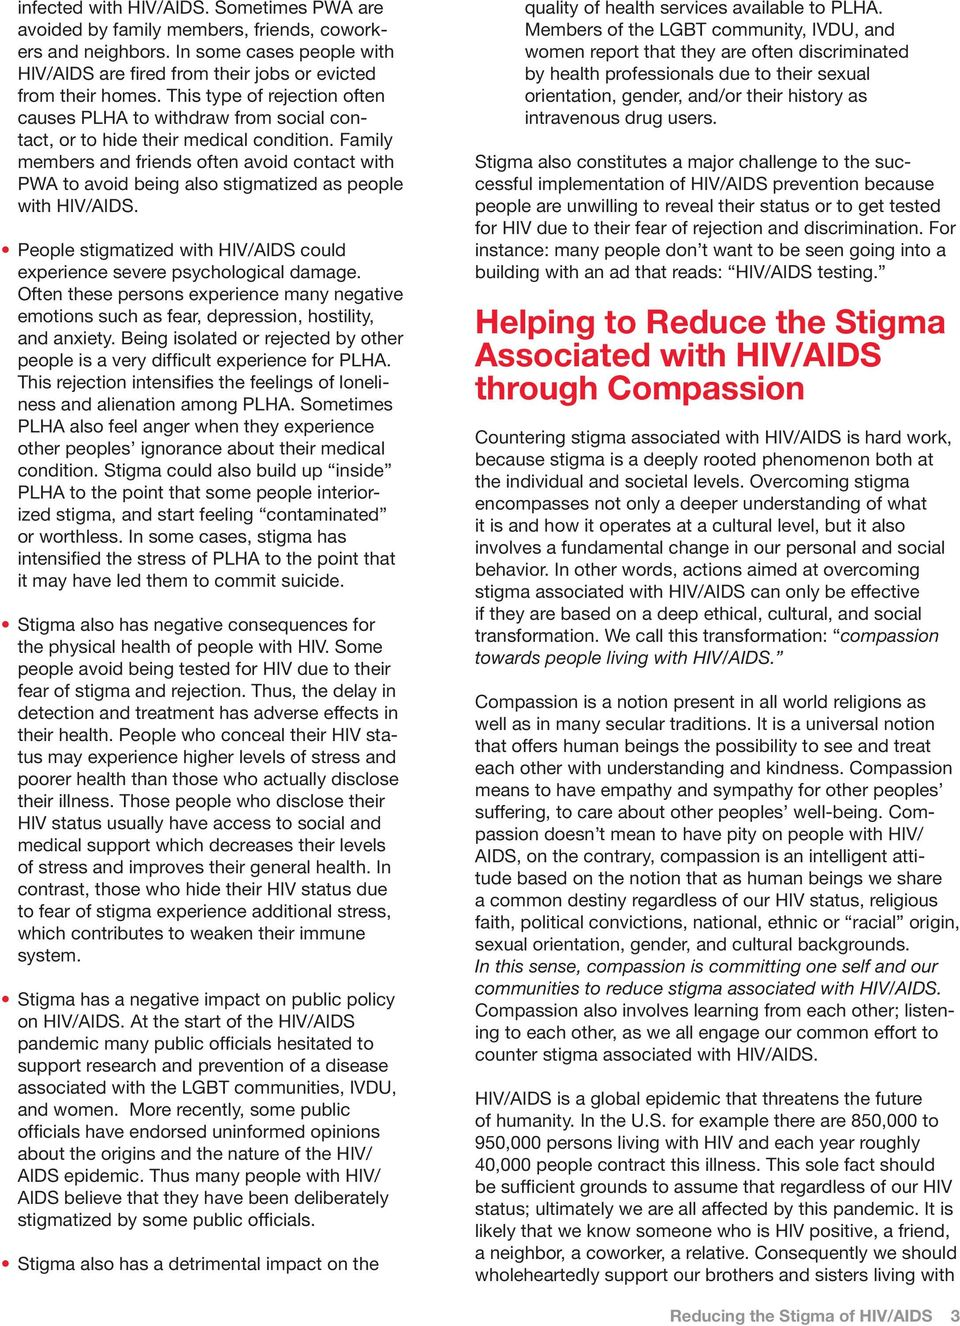 Family members and friends often avoid contact with PWA to avoid being also stigmatized as people with HIV/AIDS. People stigmatized with HIV/AIDS could experience severe psychological damage.